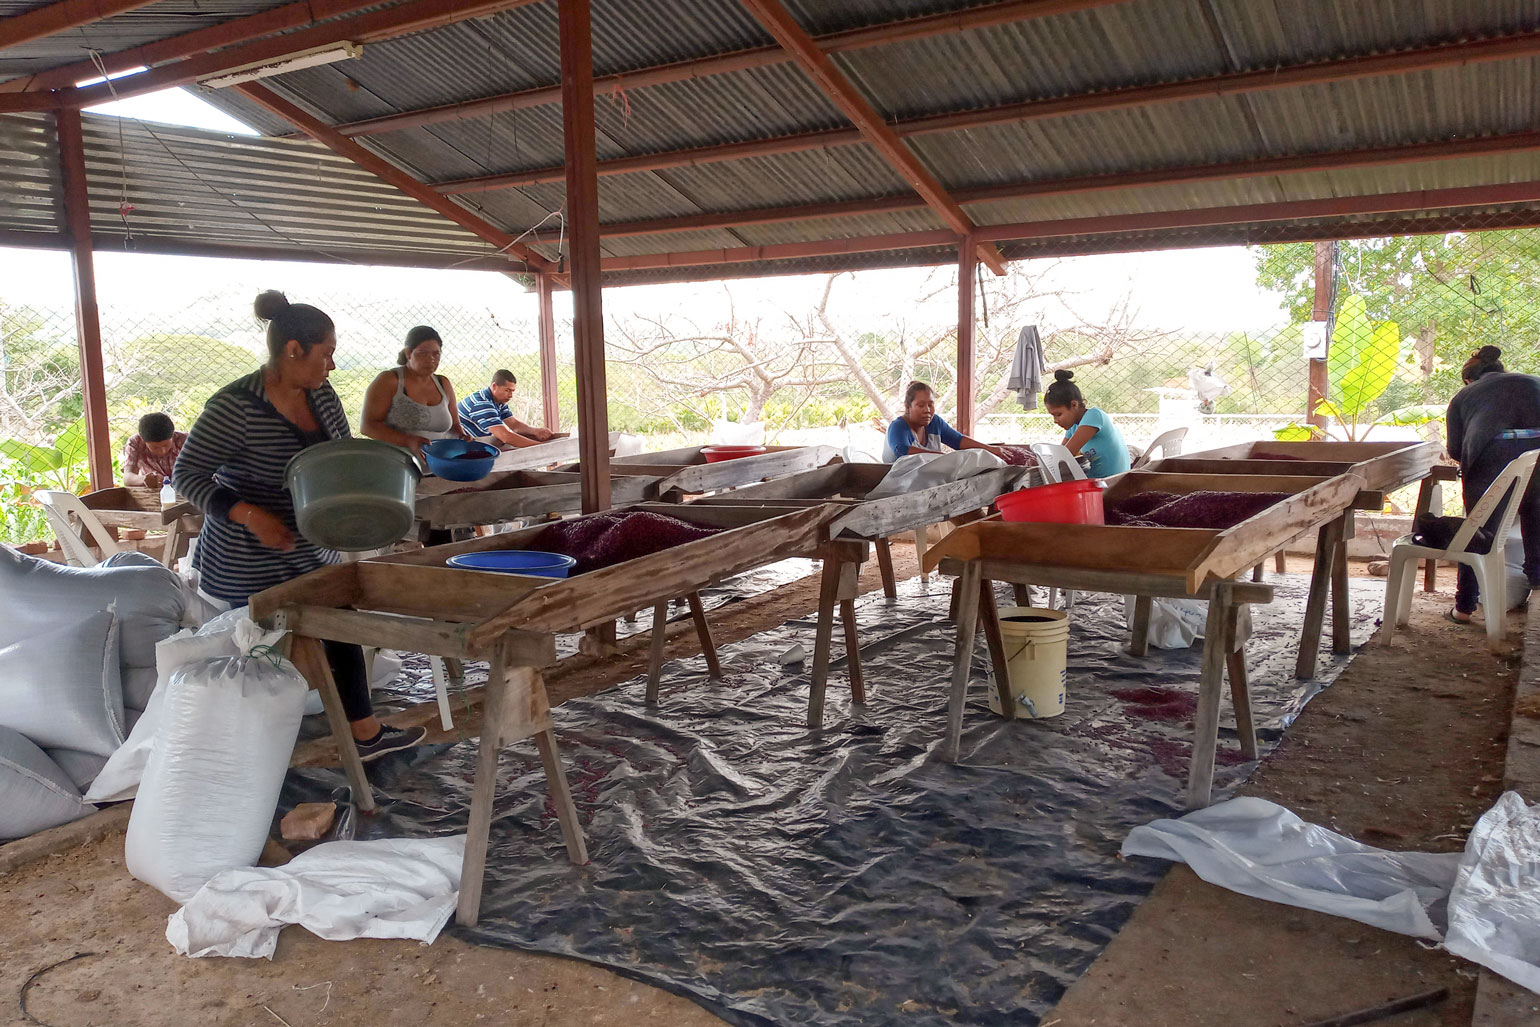 Rural to urban connection is building food sovereignty in Nicaragua - Tables are set up in an open sided building. The tables have piles of red beans on them. Seven people are hunched over various tables and going through the beans.